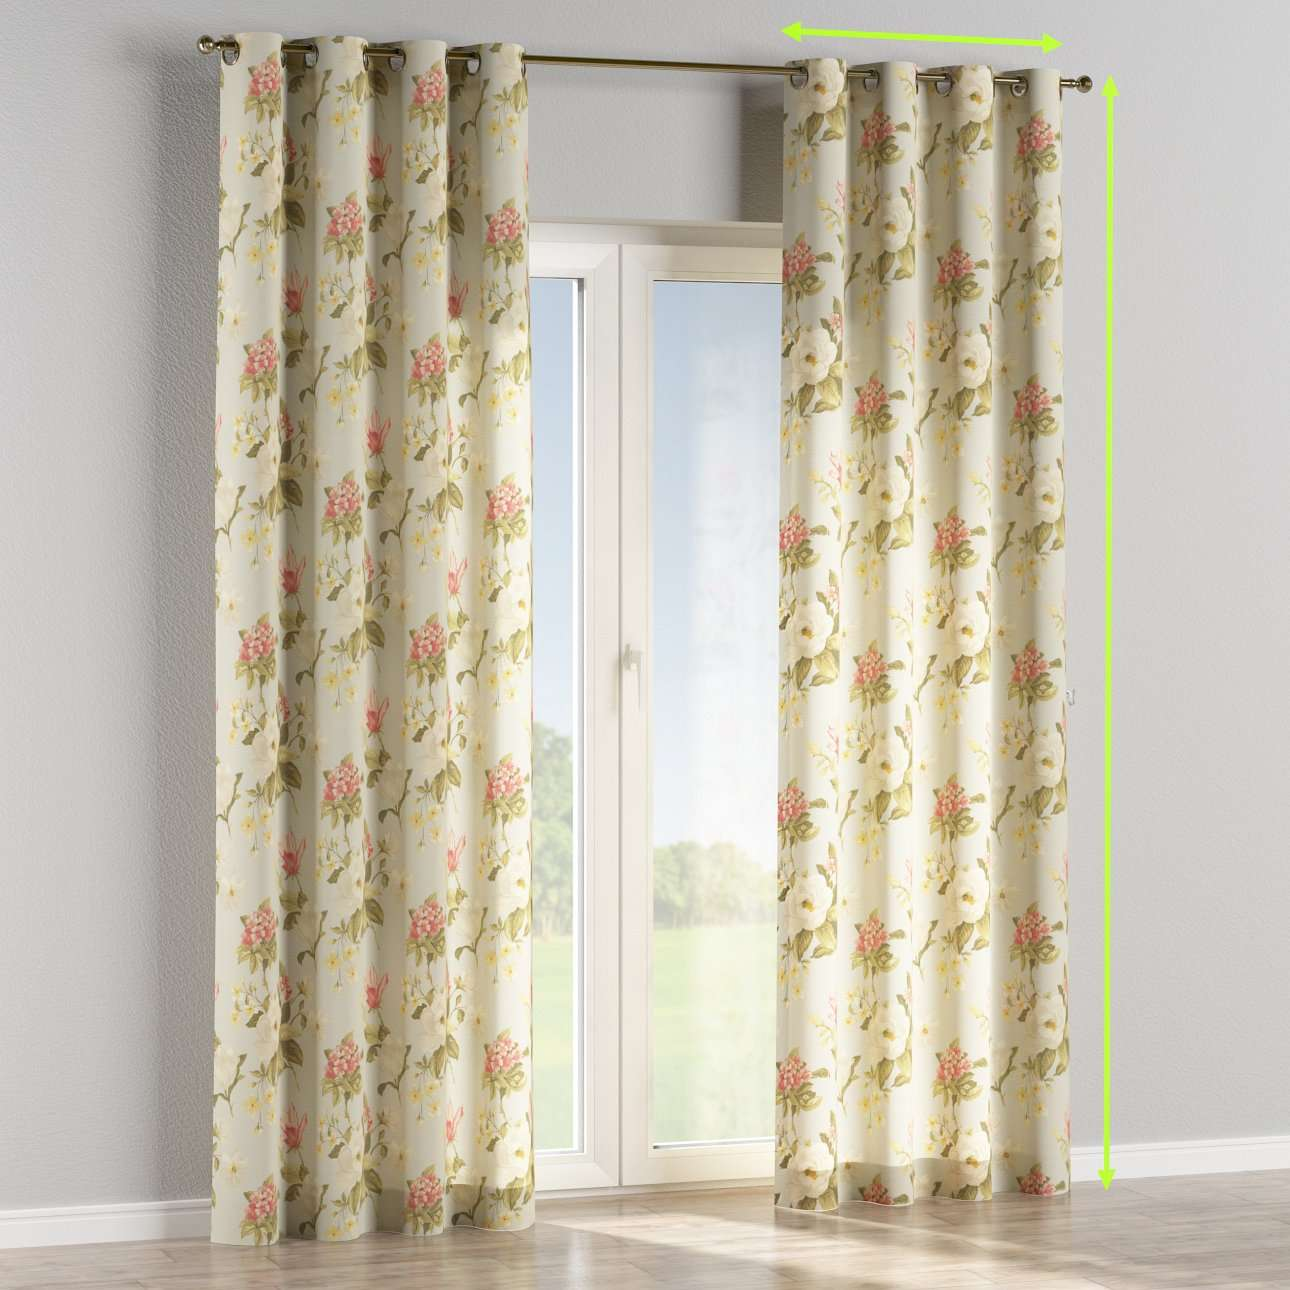 Eyelet lined curtains in collection Londres, fabric: 123-65